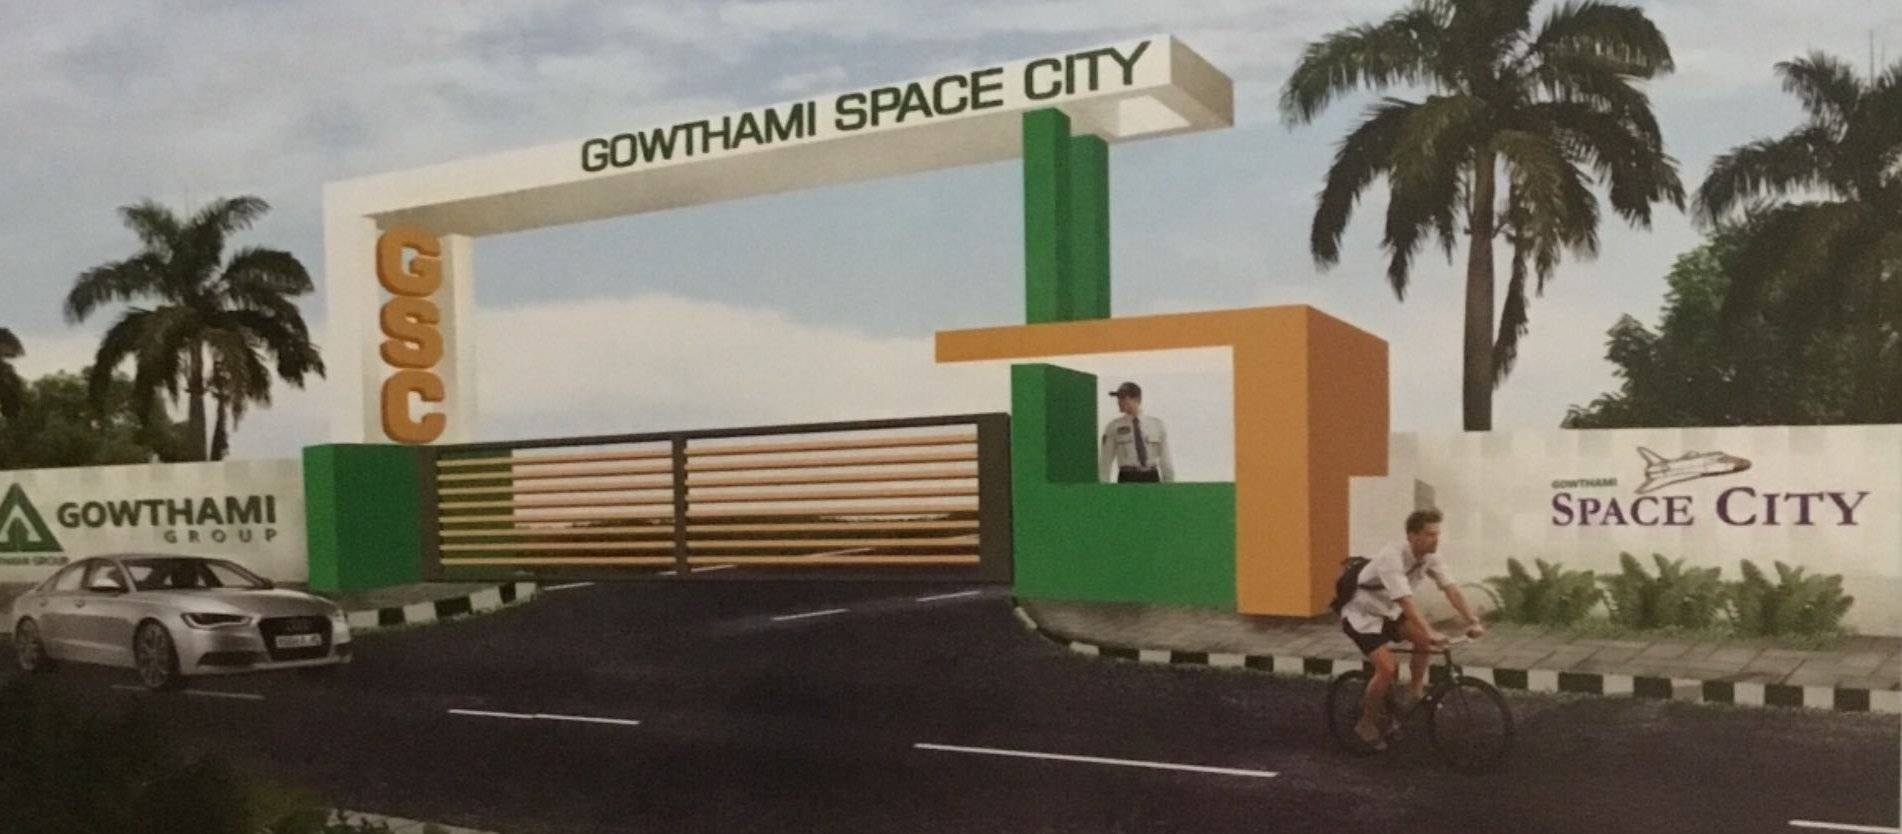 Gowthami Group